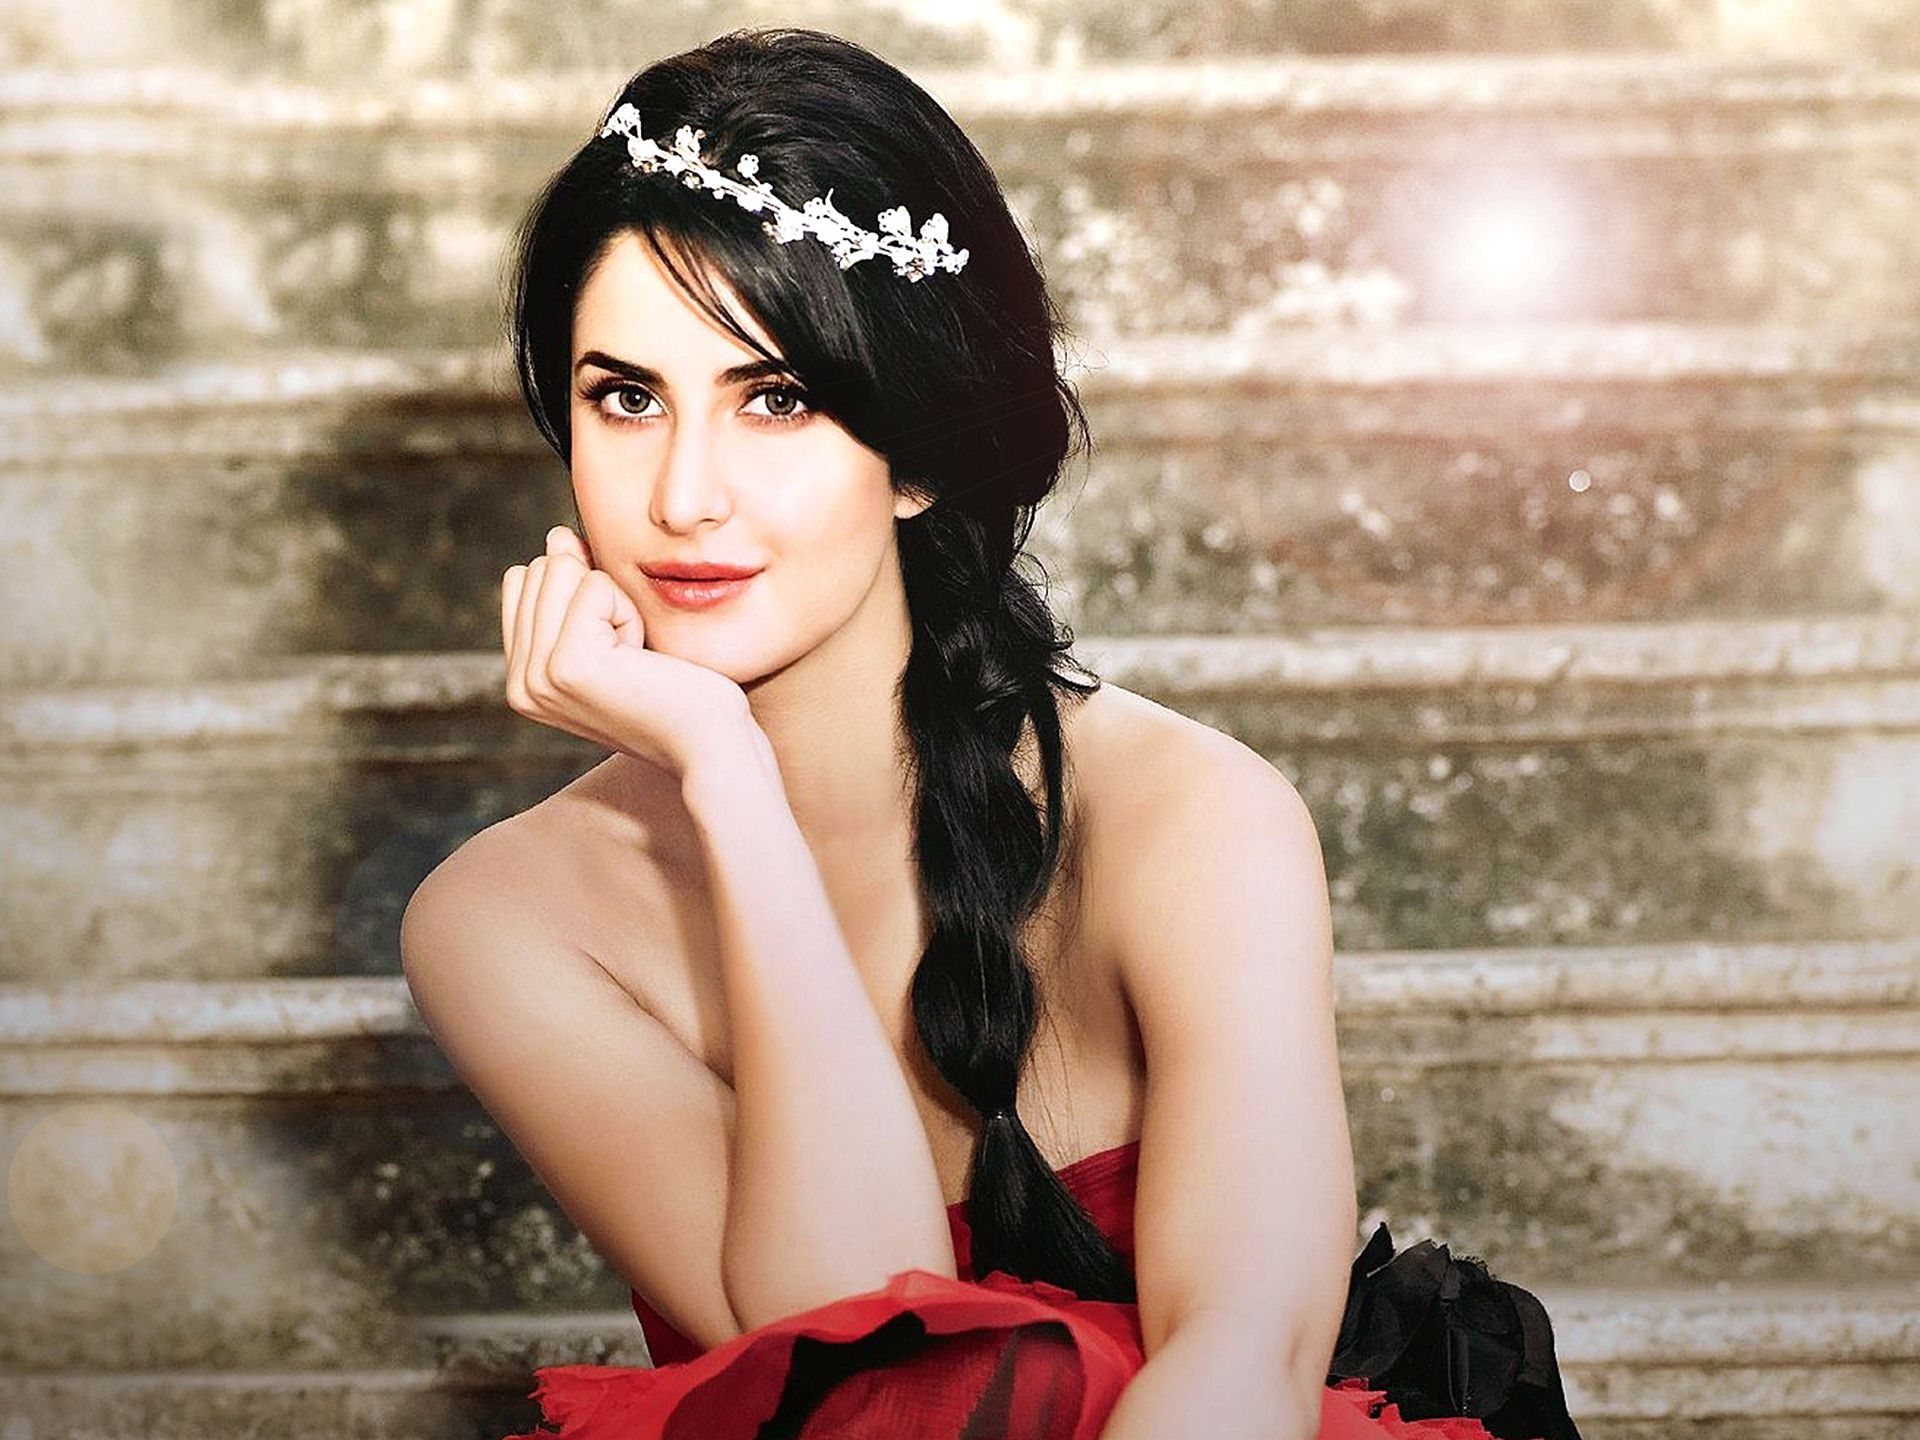 Katrina-Kaif-Cute-Photoshoot-HD-Wallpaper